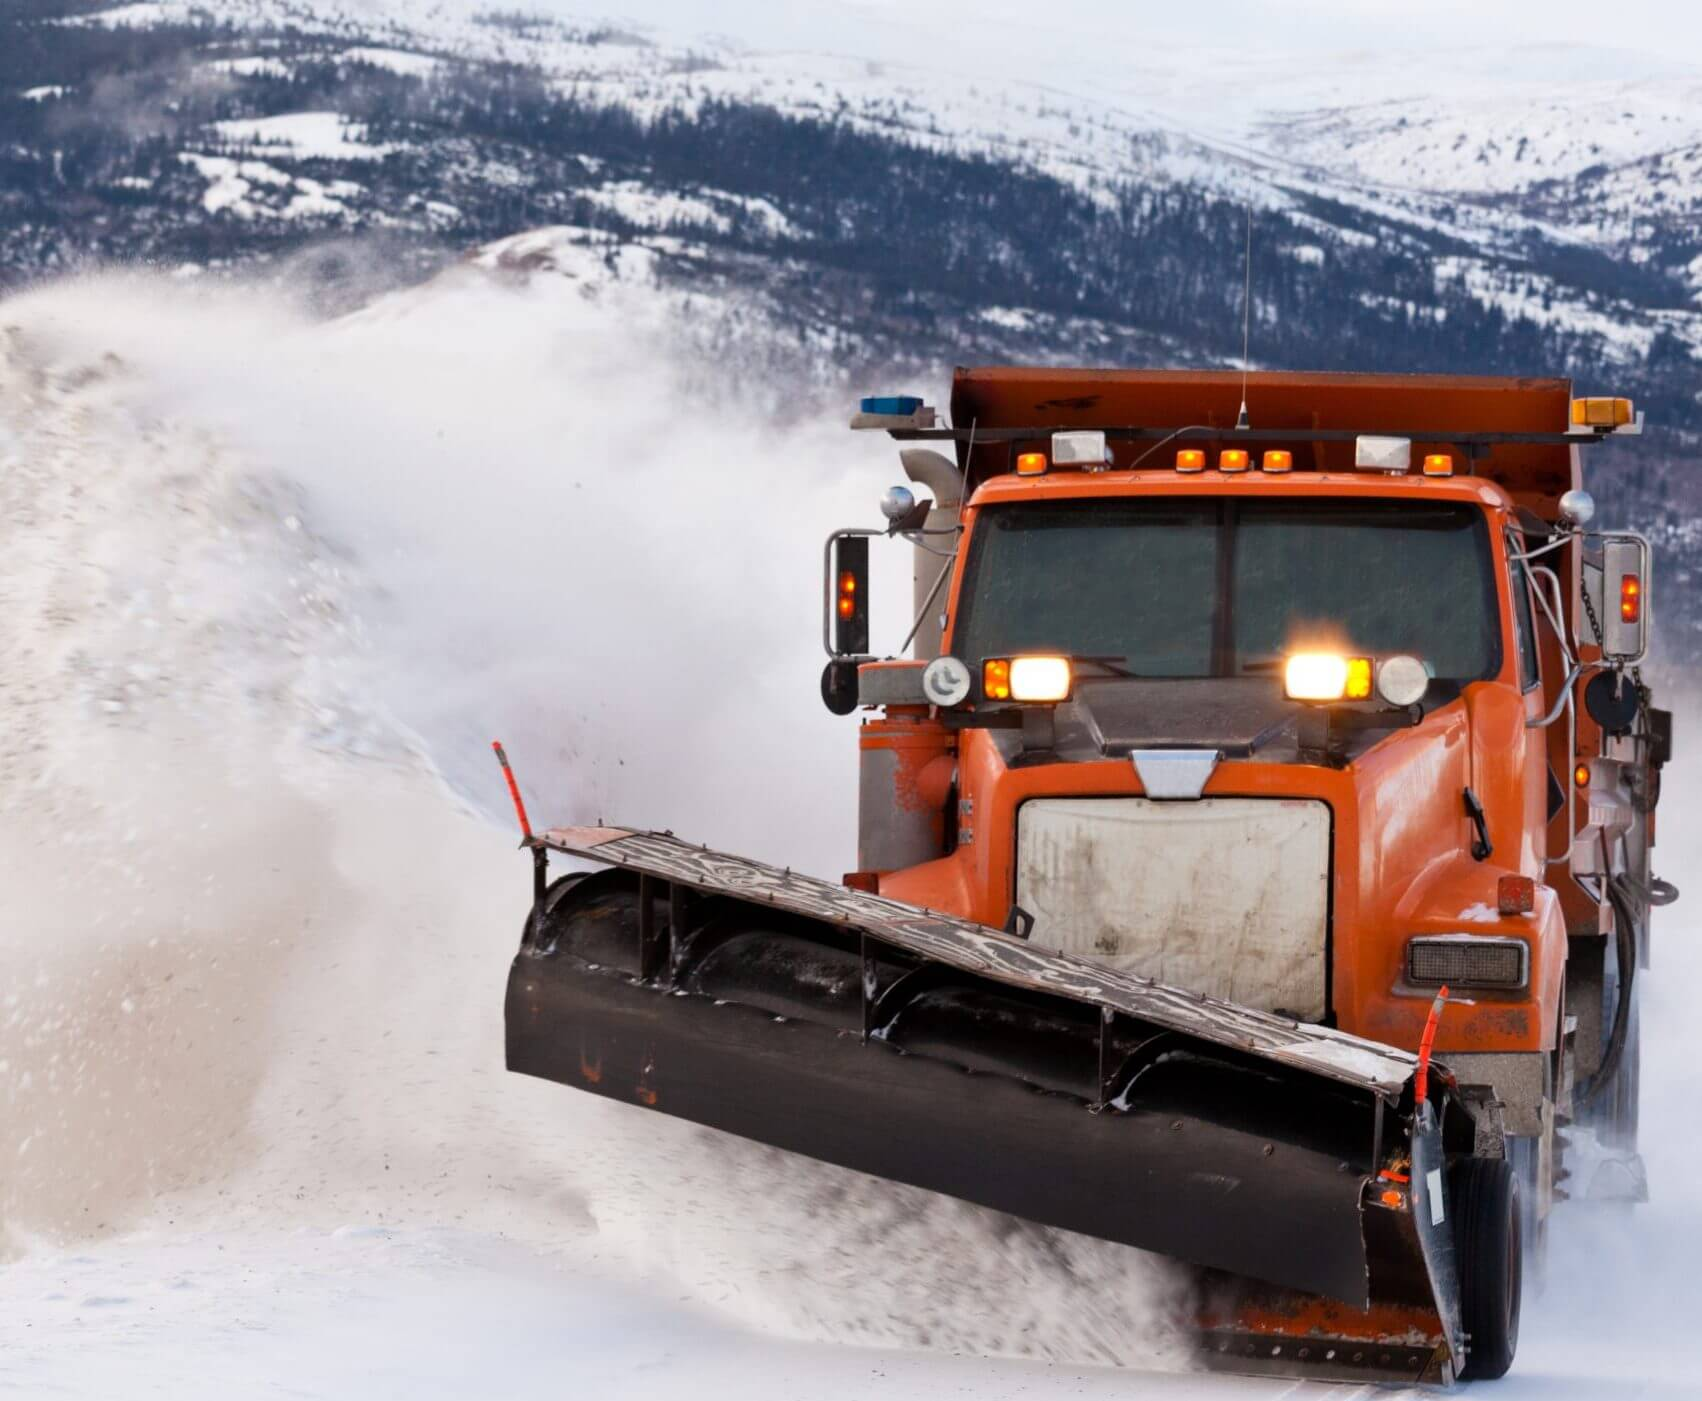 Machine learning uncovers key insights for snow removal